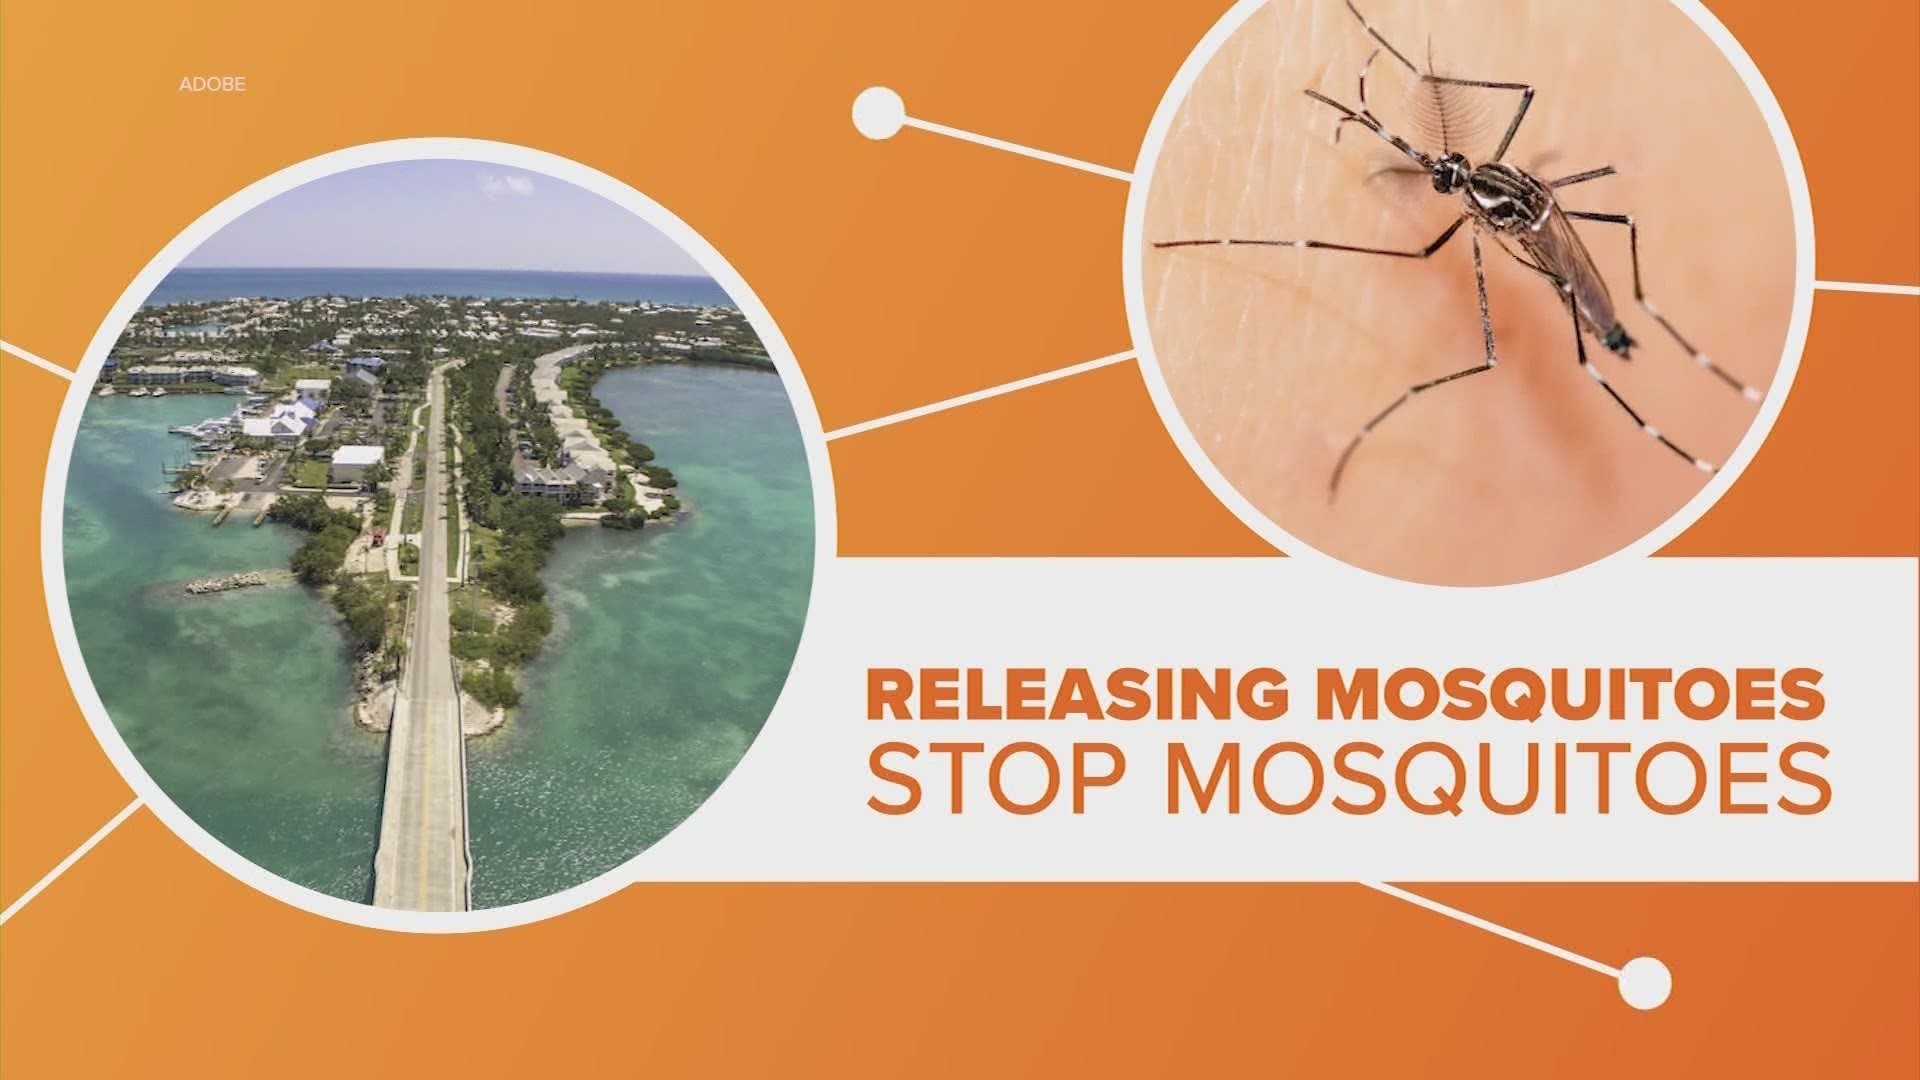 Genetically modified mosquitoes to be released in Florida | khou.com